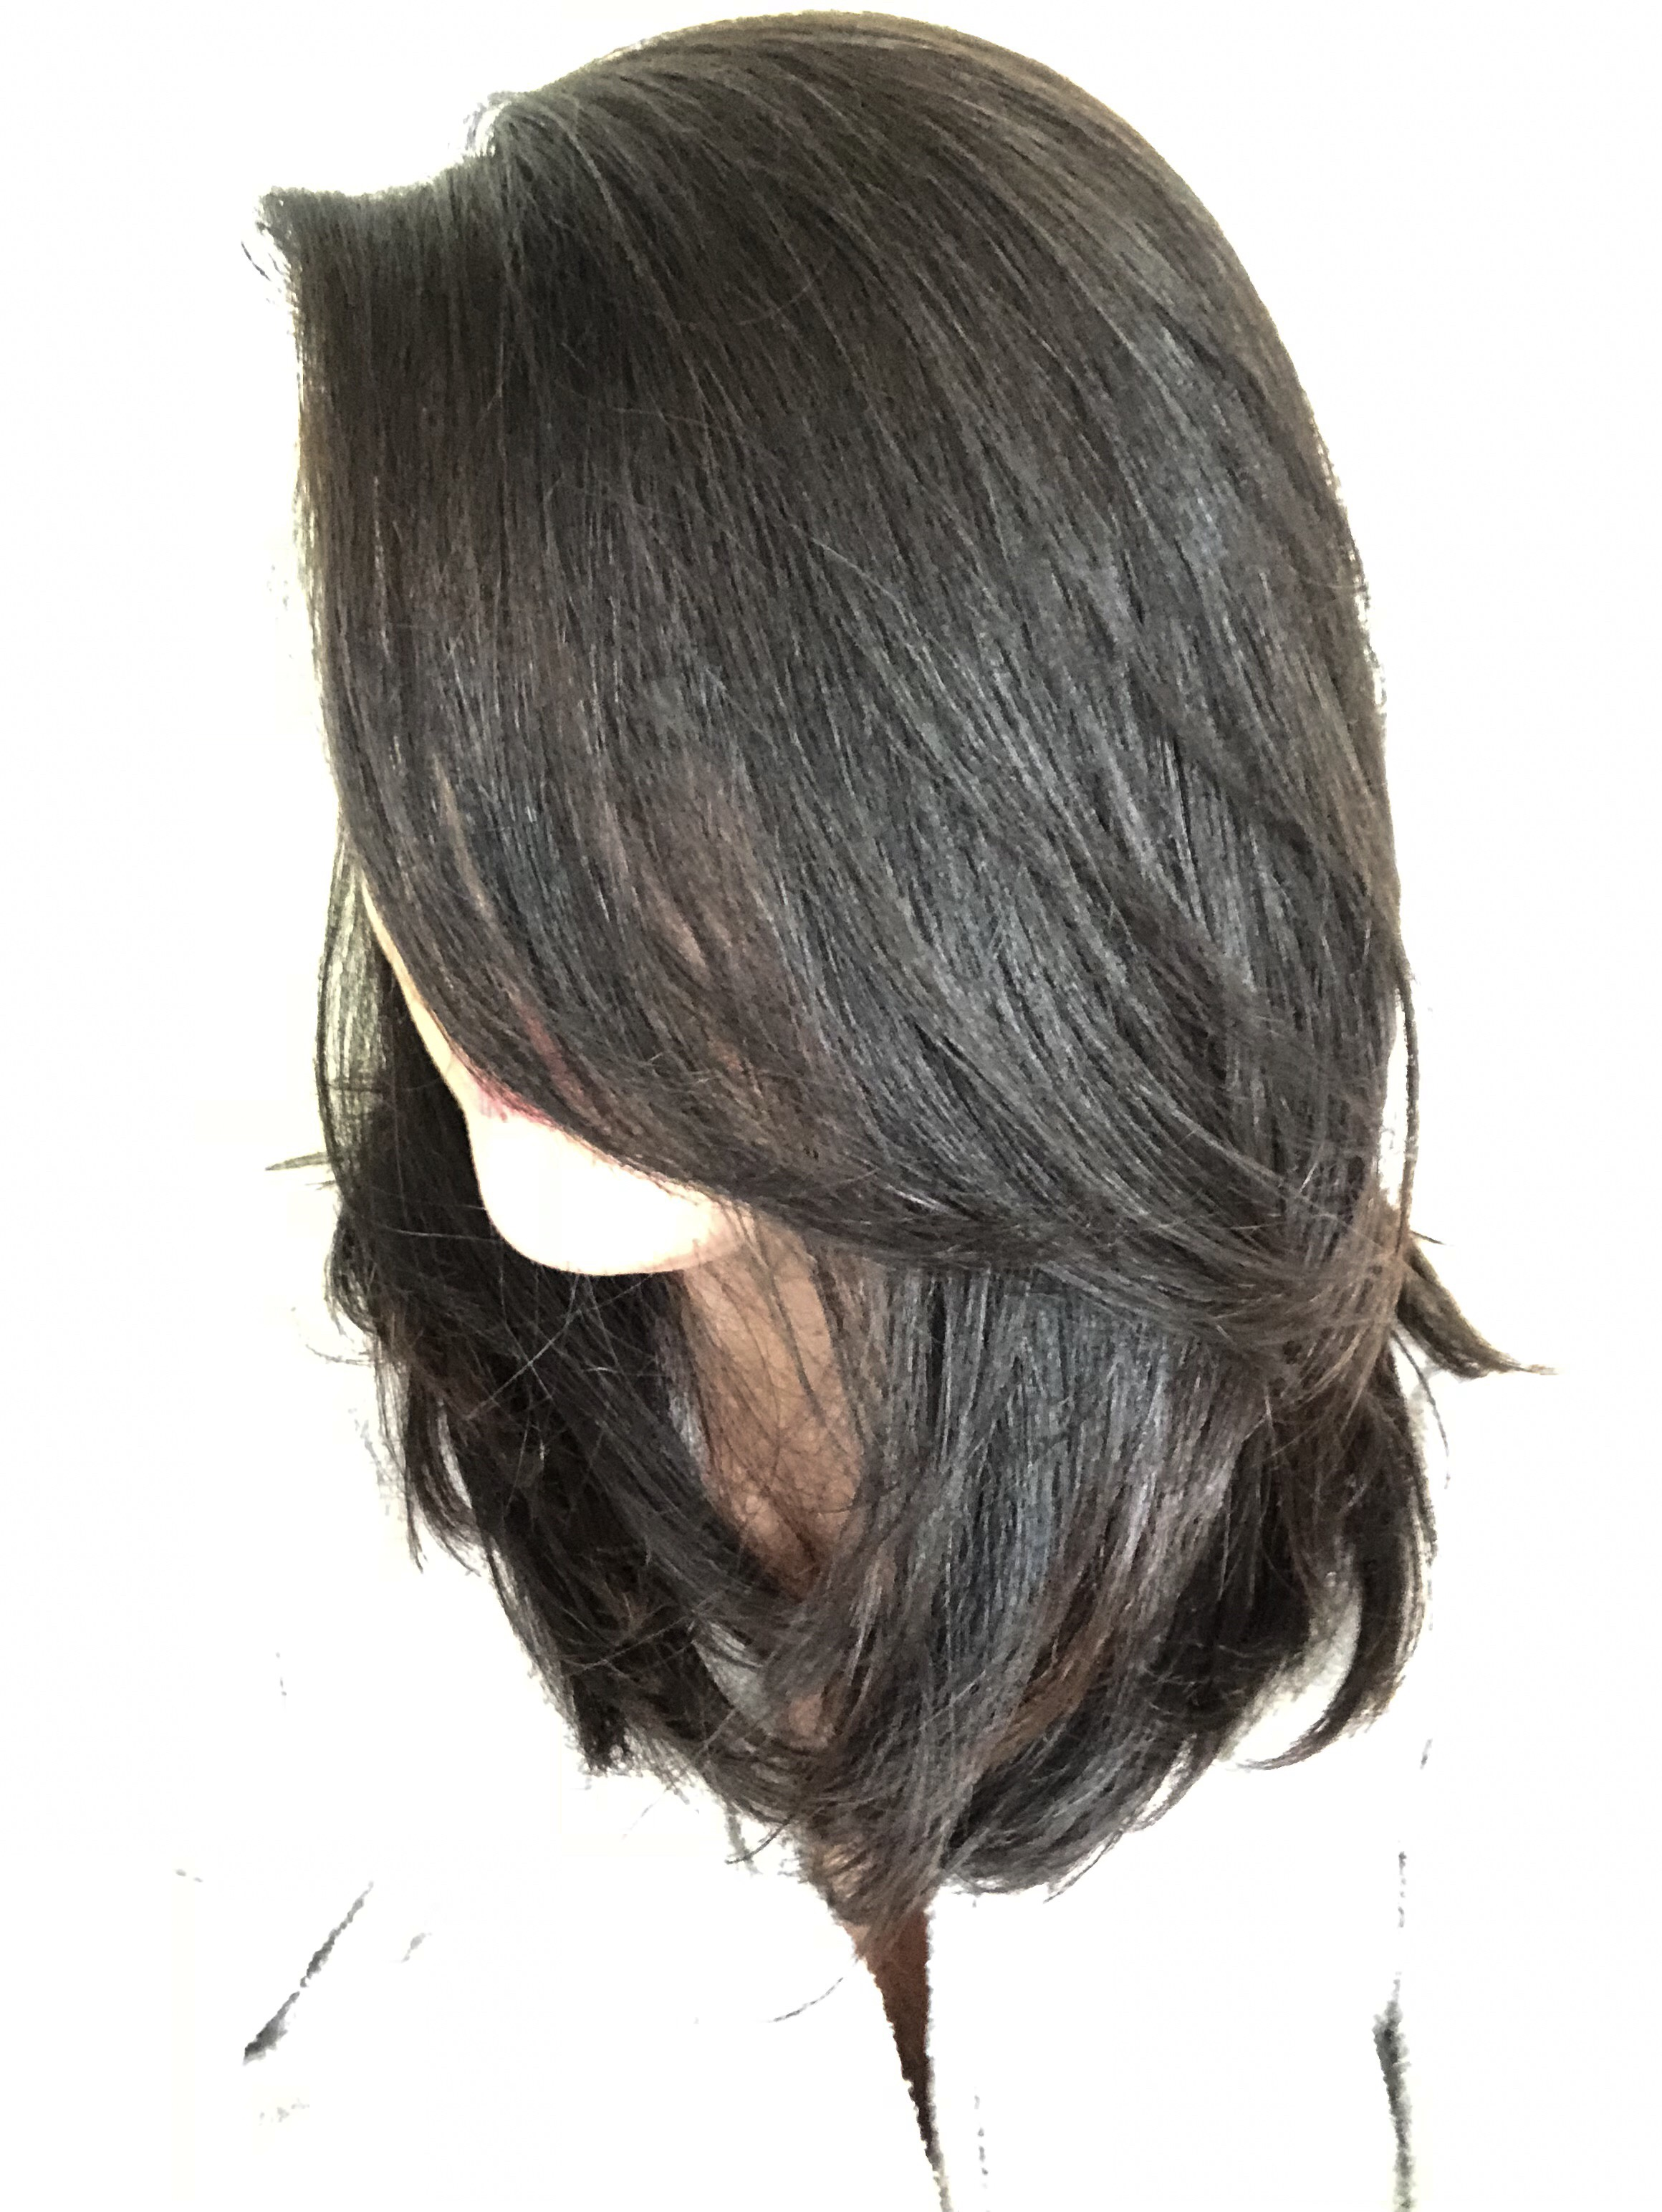 The Recent Change That I Made That Helps Me Feel Put Together 2 Hairstyle How To S Kozy And Co